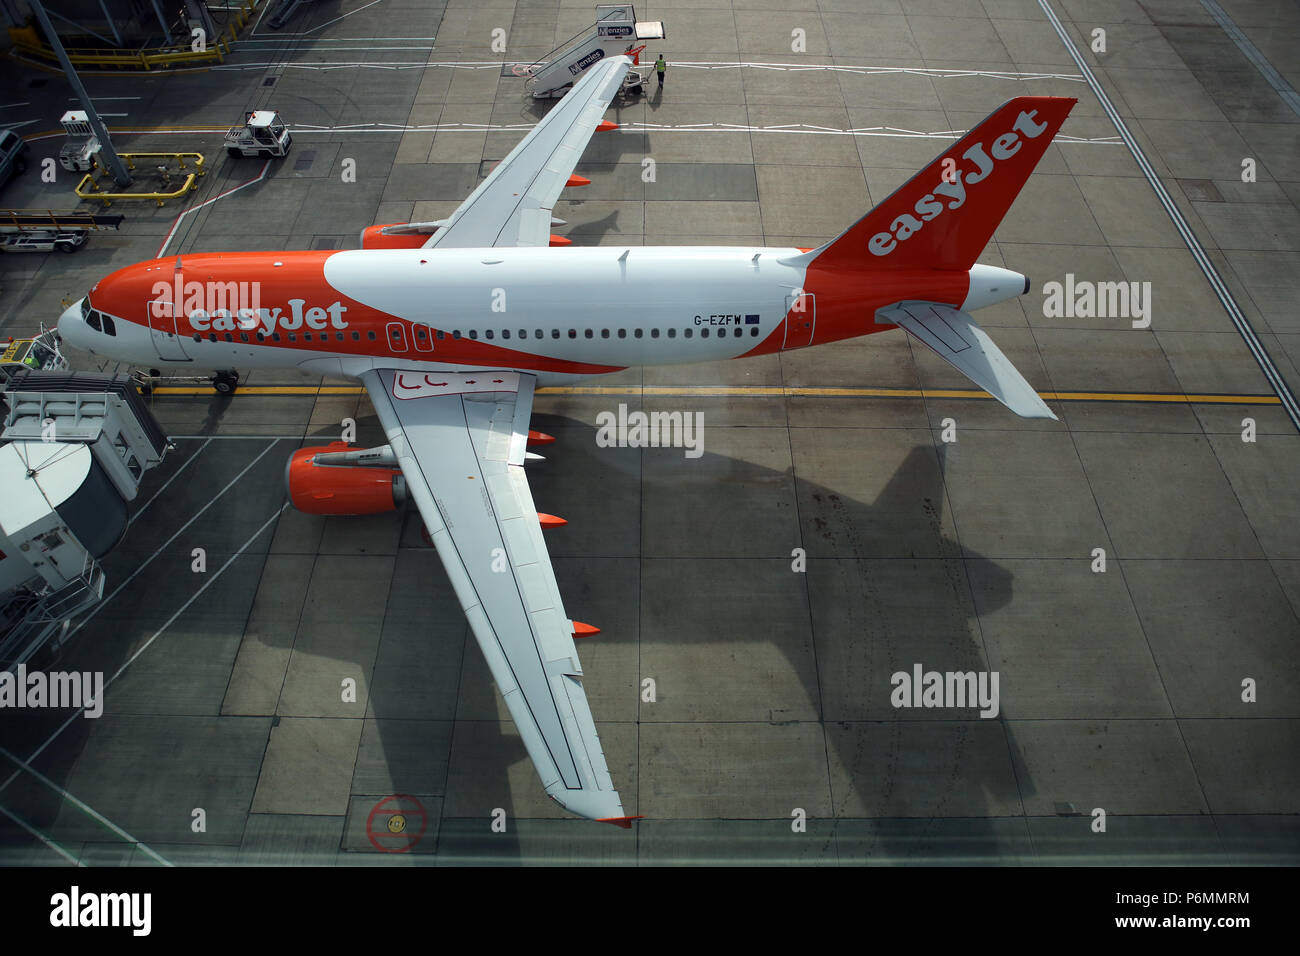 London, United Kingdom, Airbus A 319 owned by easyJet at the terminal of London Gatwick Airport - Stock Image